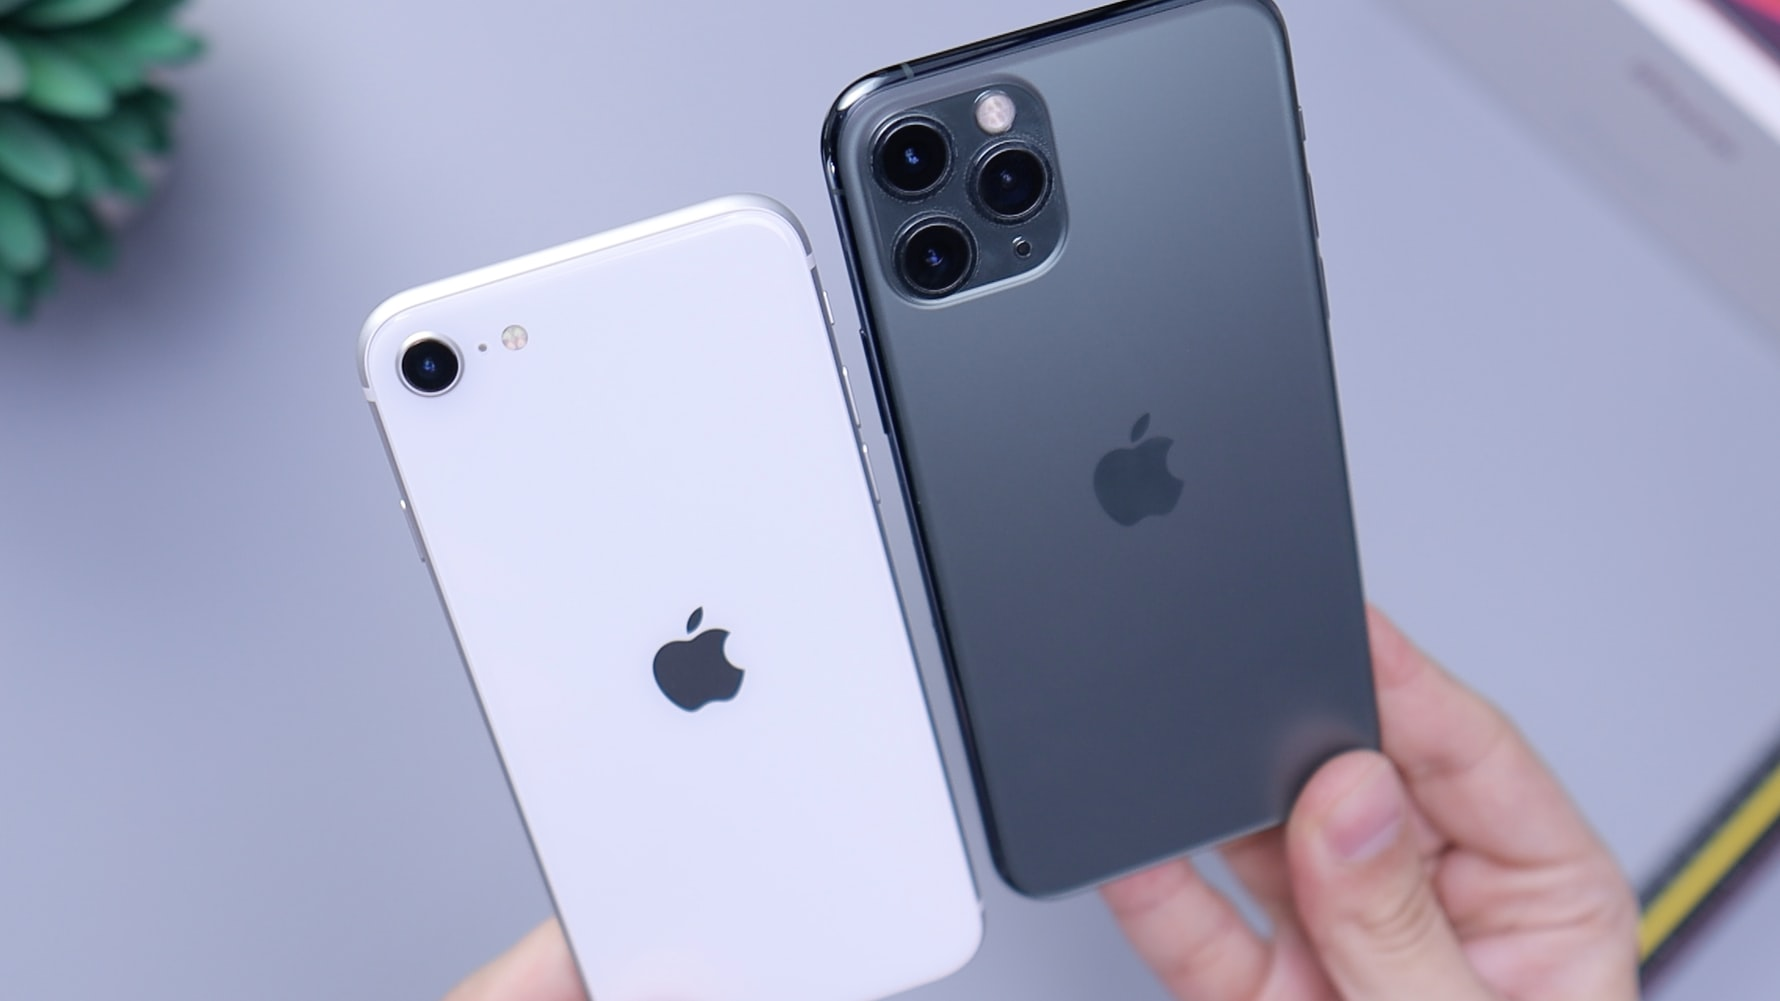 A white iPhone SE and grey iPhone 11 Pro